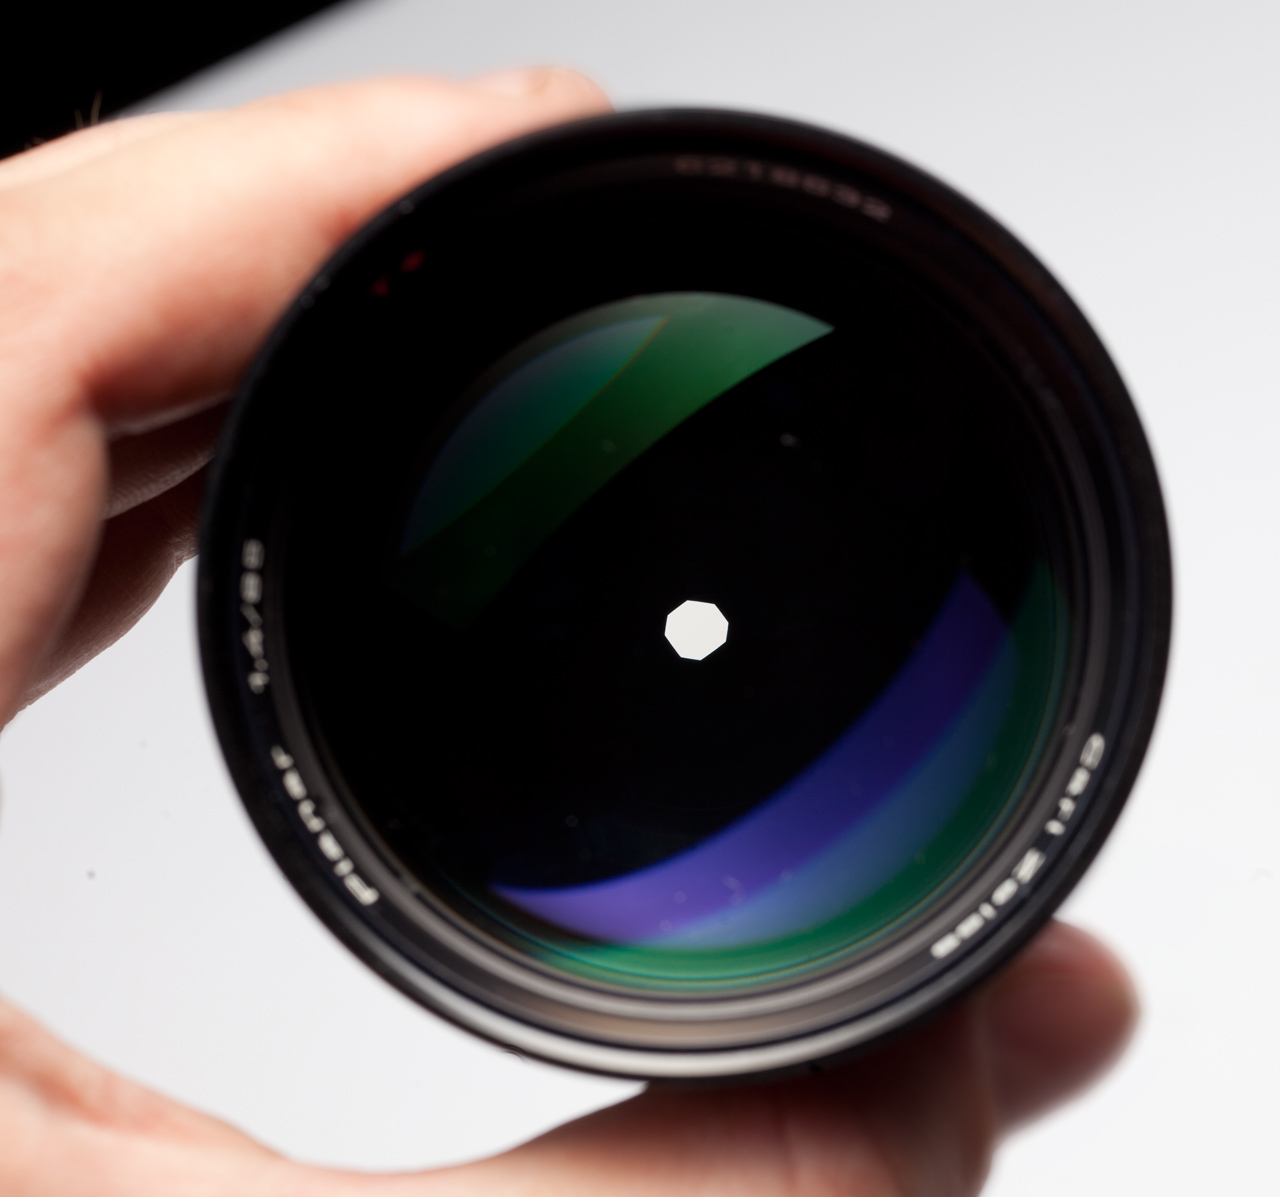 German Carl Zeiss Planar 85/1.4 with aperture closed to F8